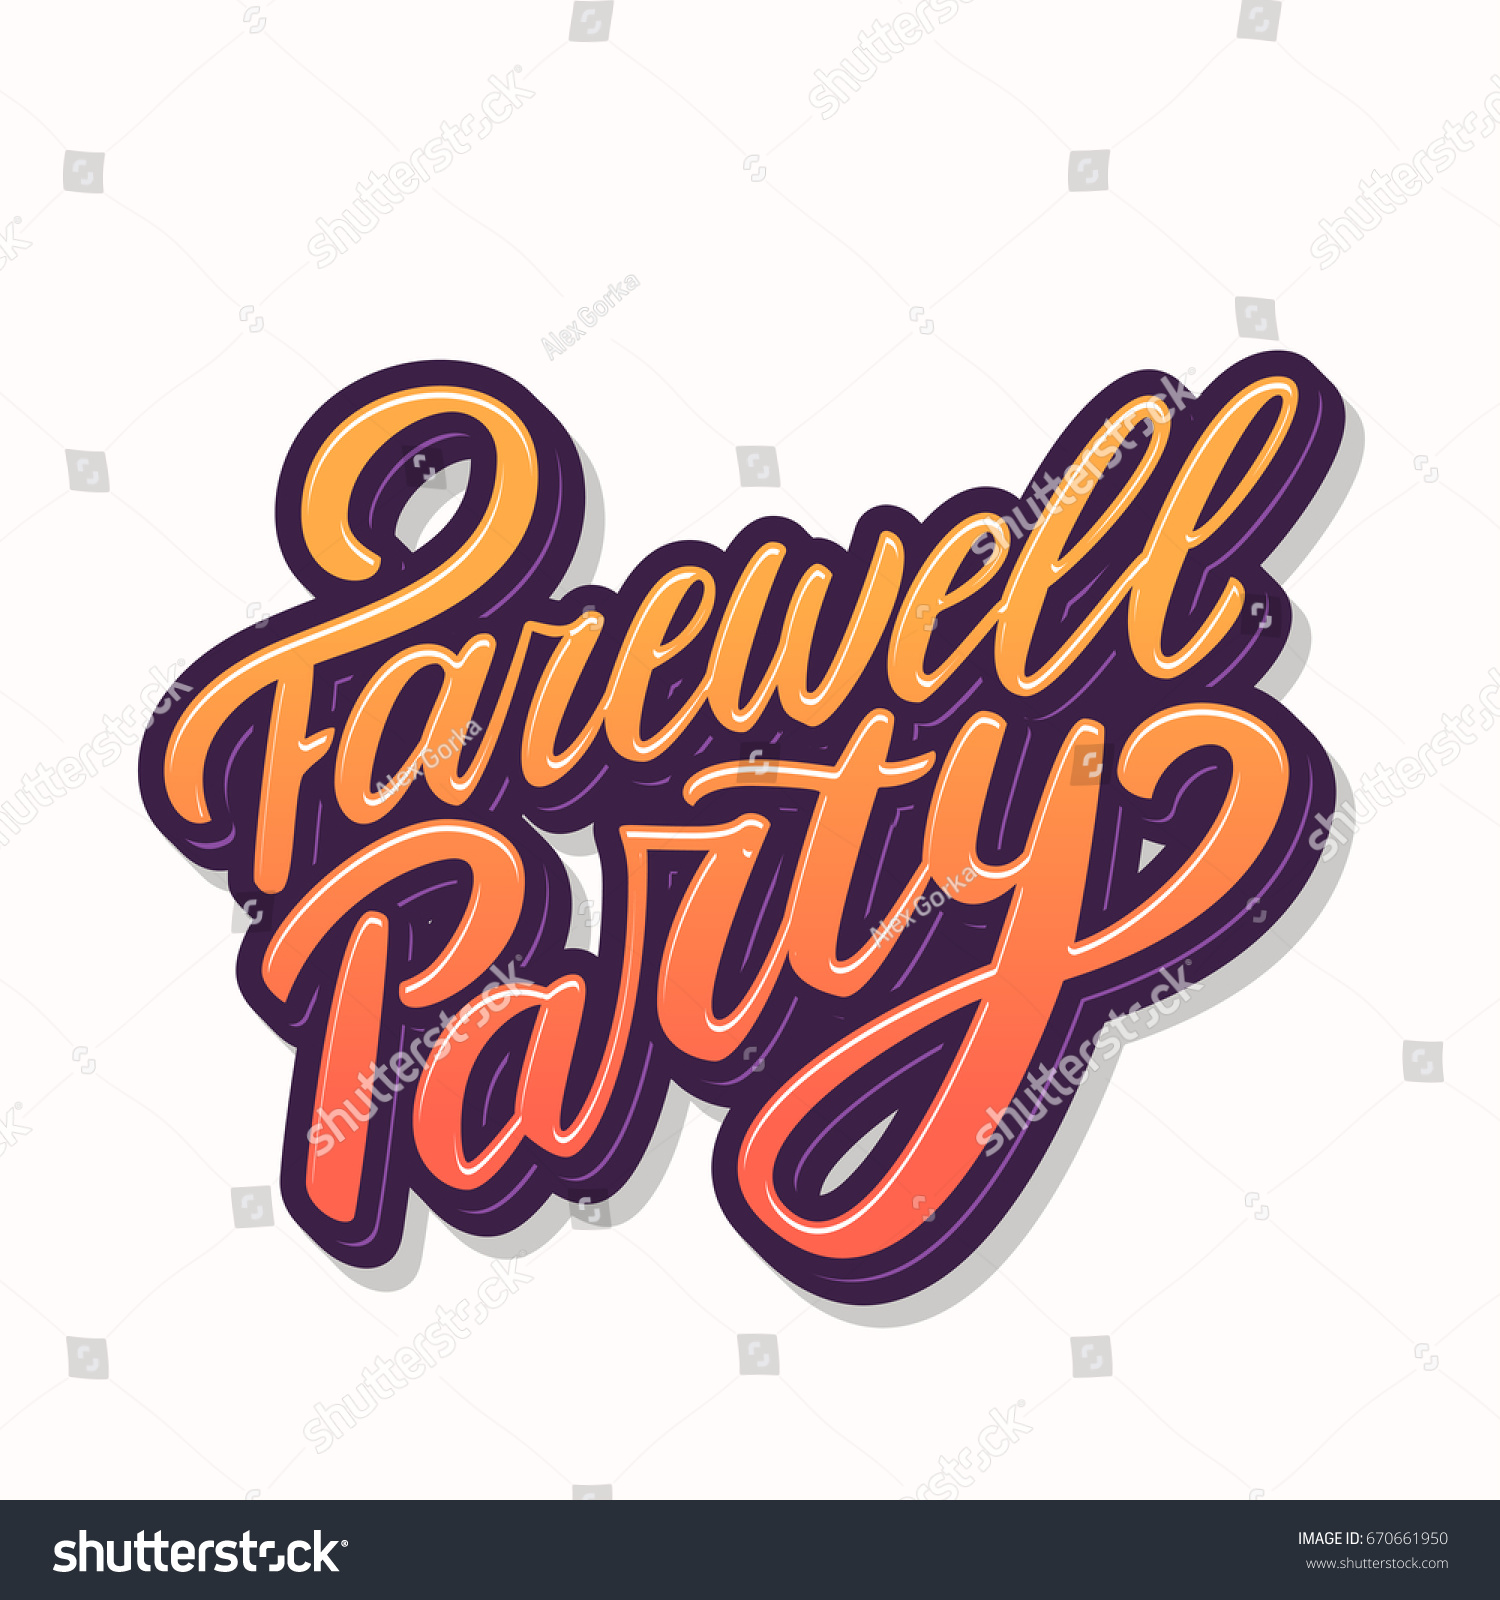 Png Farewell Party & Free Farewell Party.png Transparent Images.